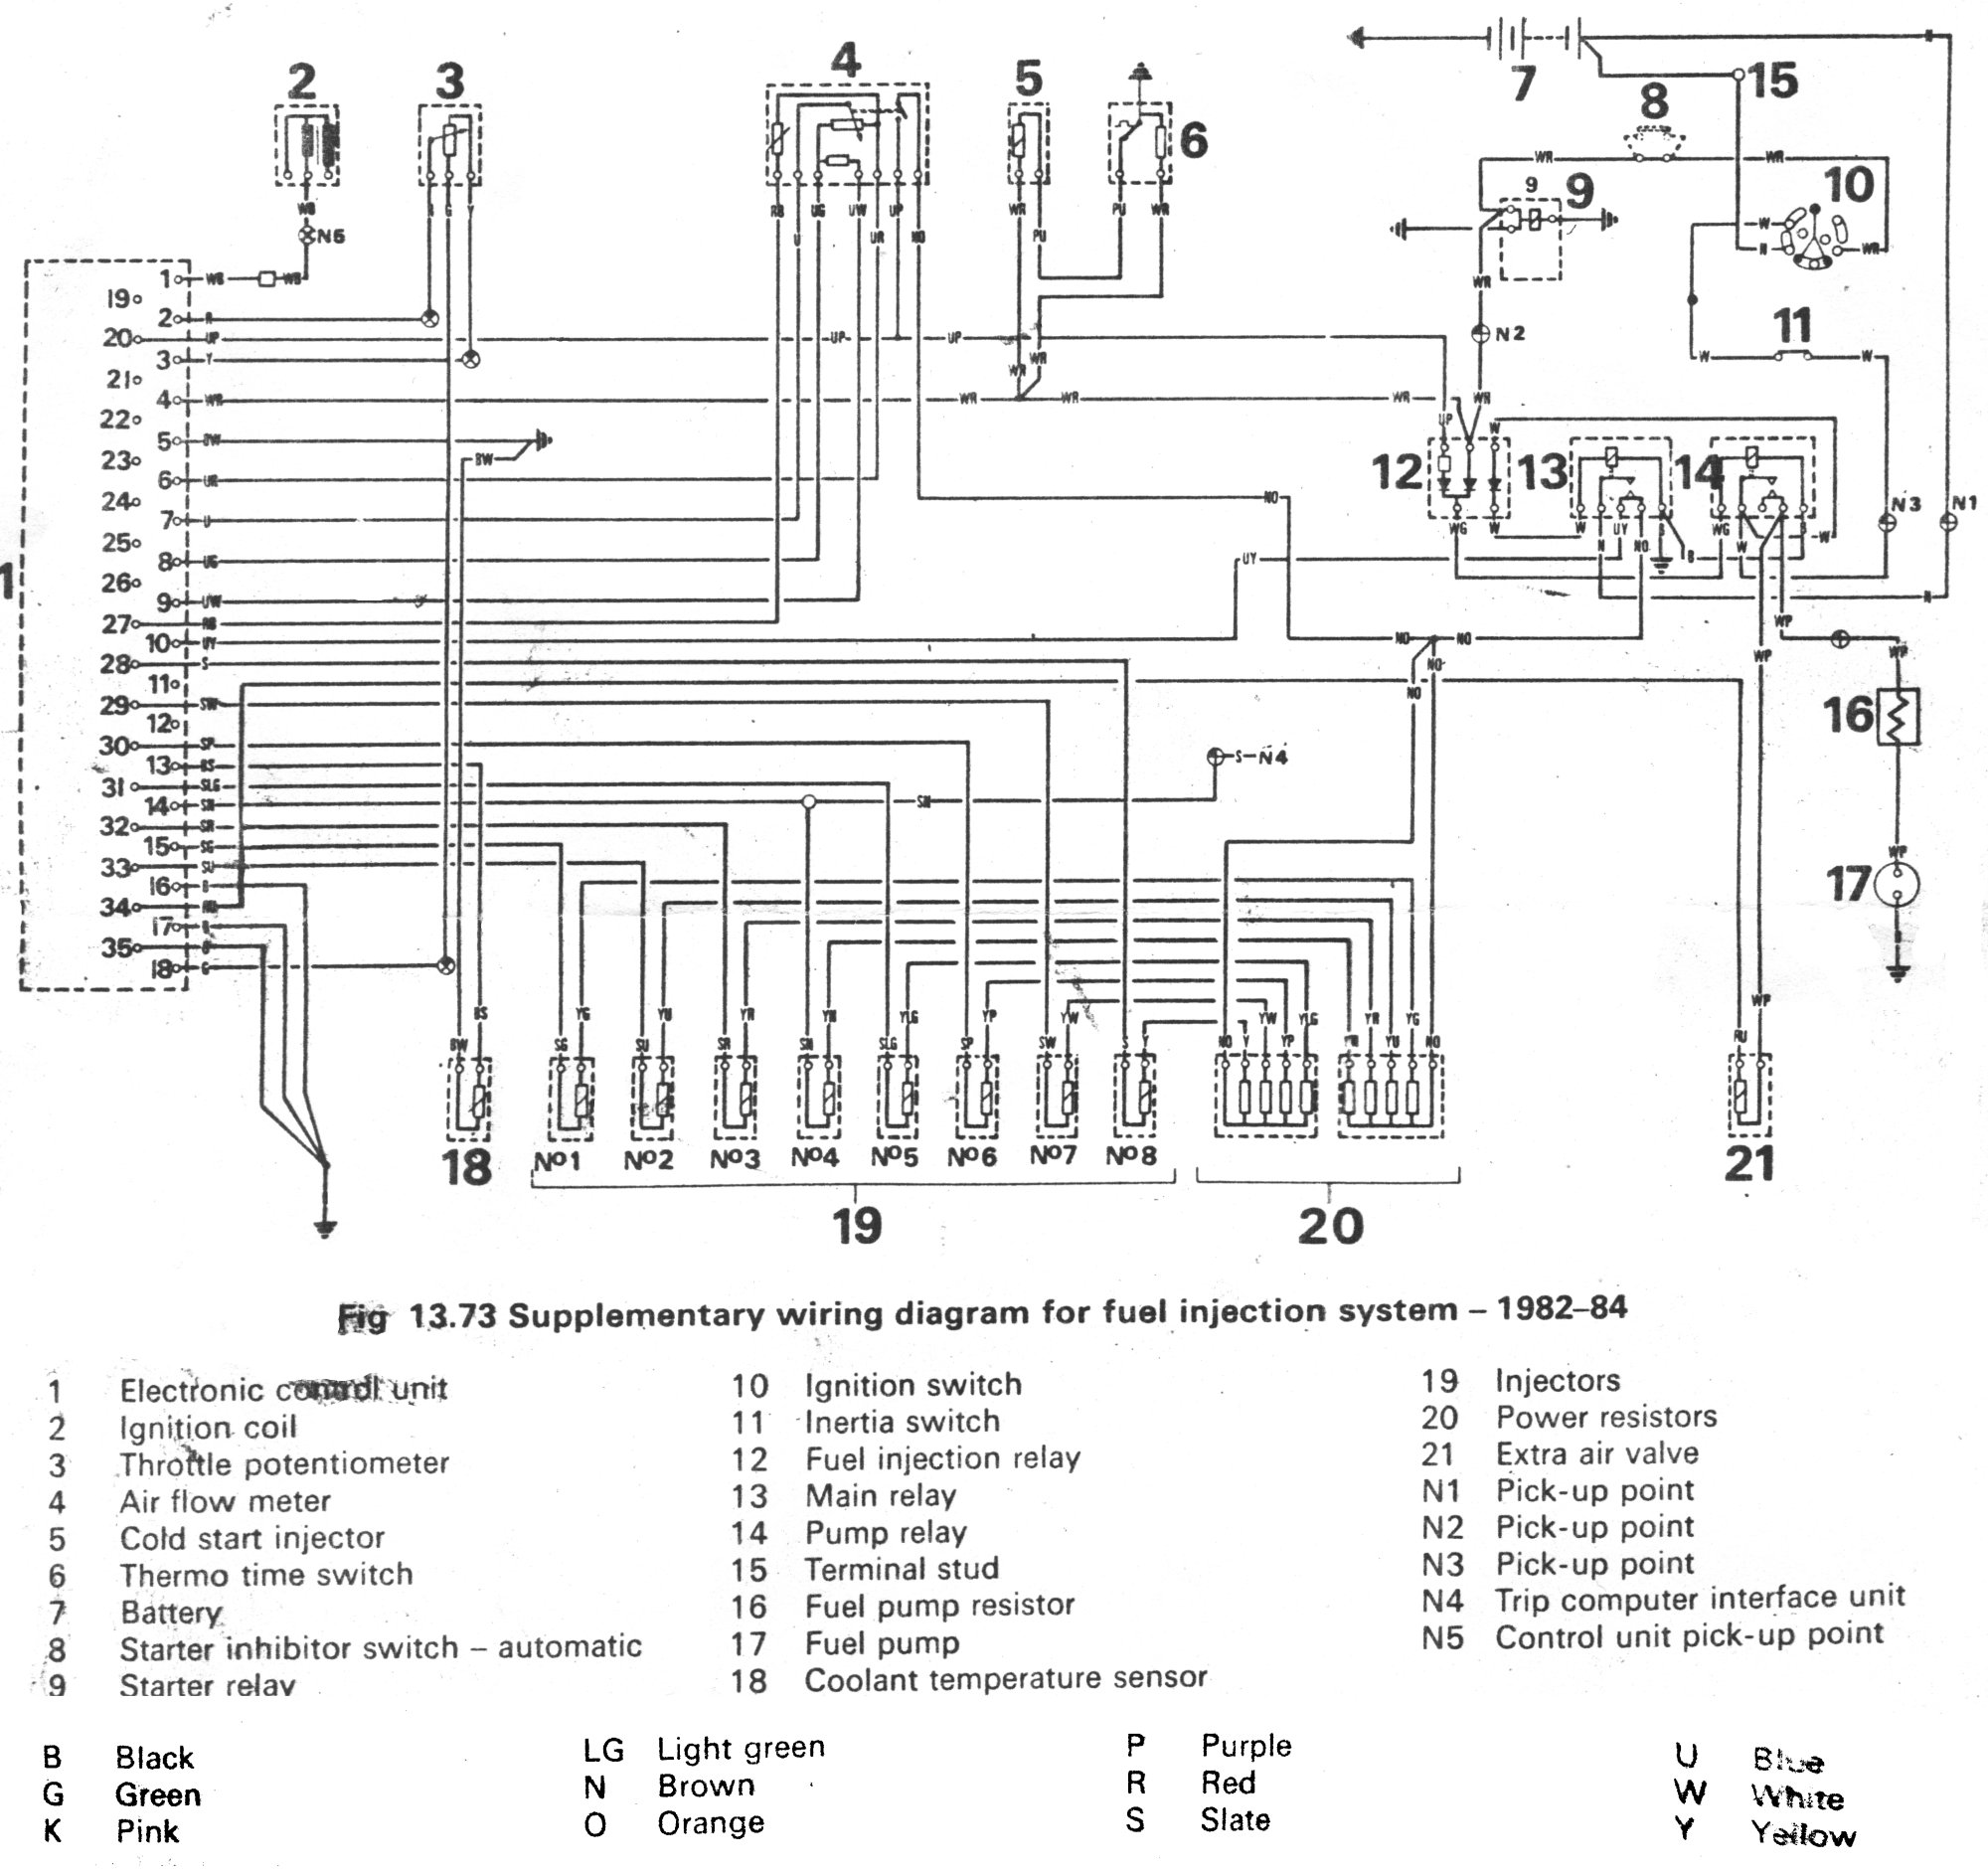 1999 ford ranger xlt fuse box diagram TgqcMDc wiring diagram for car 1998 ford f 150 wiring diagram 1999 ford ranger ignition wiring diagram at alyssarenee.co